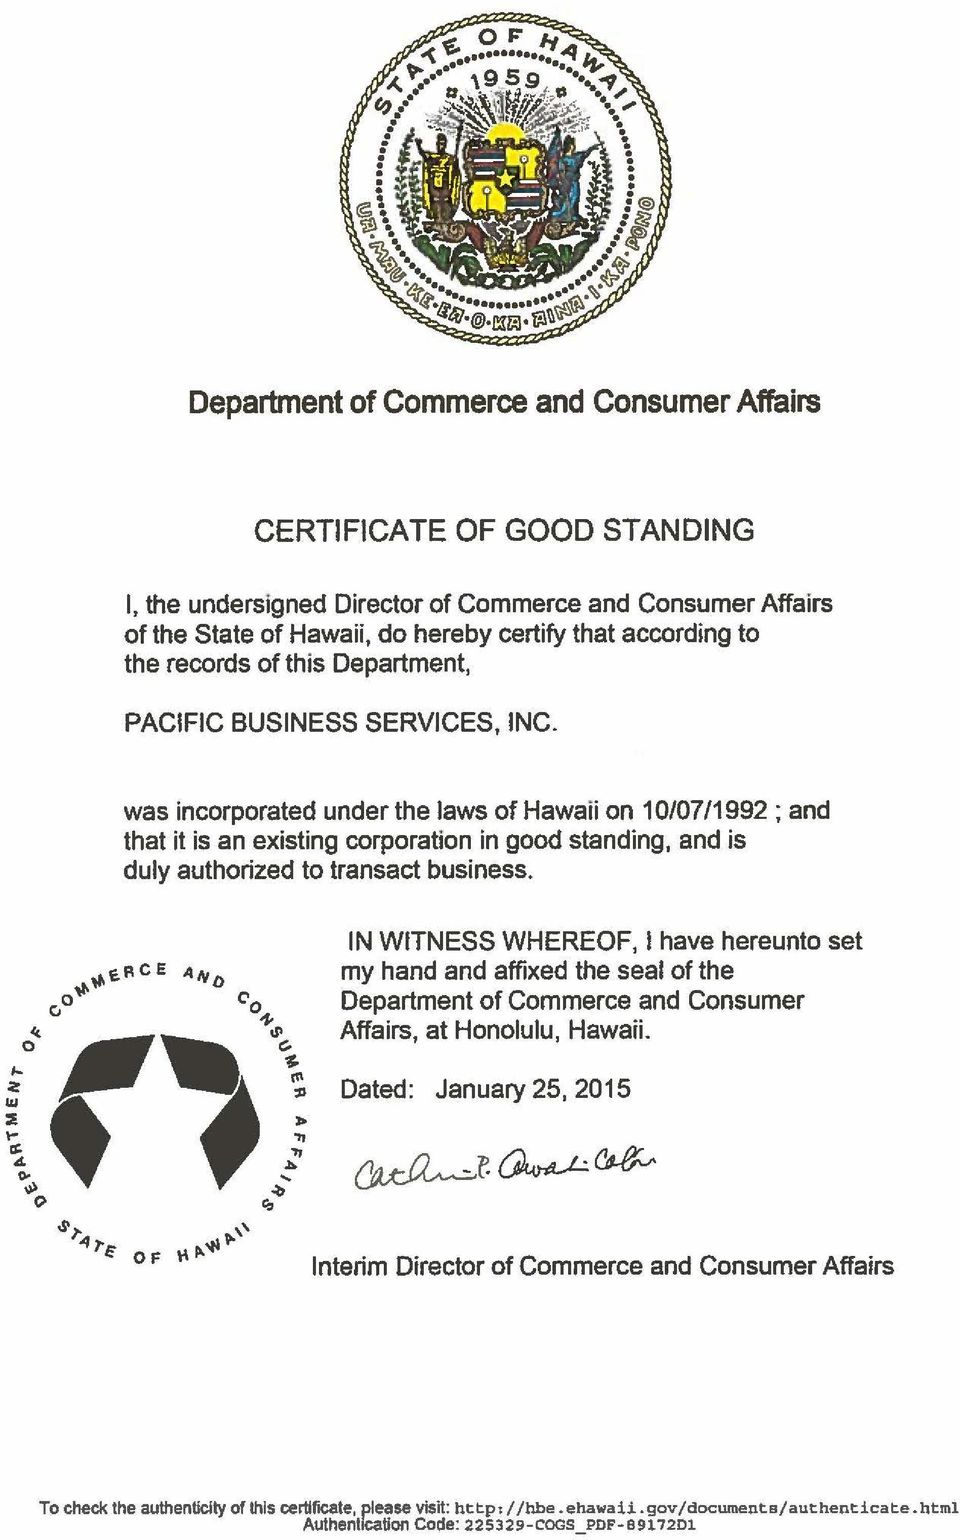 was incorporated under the laws of Hawaii on 10/07/1992; and that it is an existing corporation in good standing, and is duly authorized to transact business.